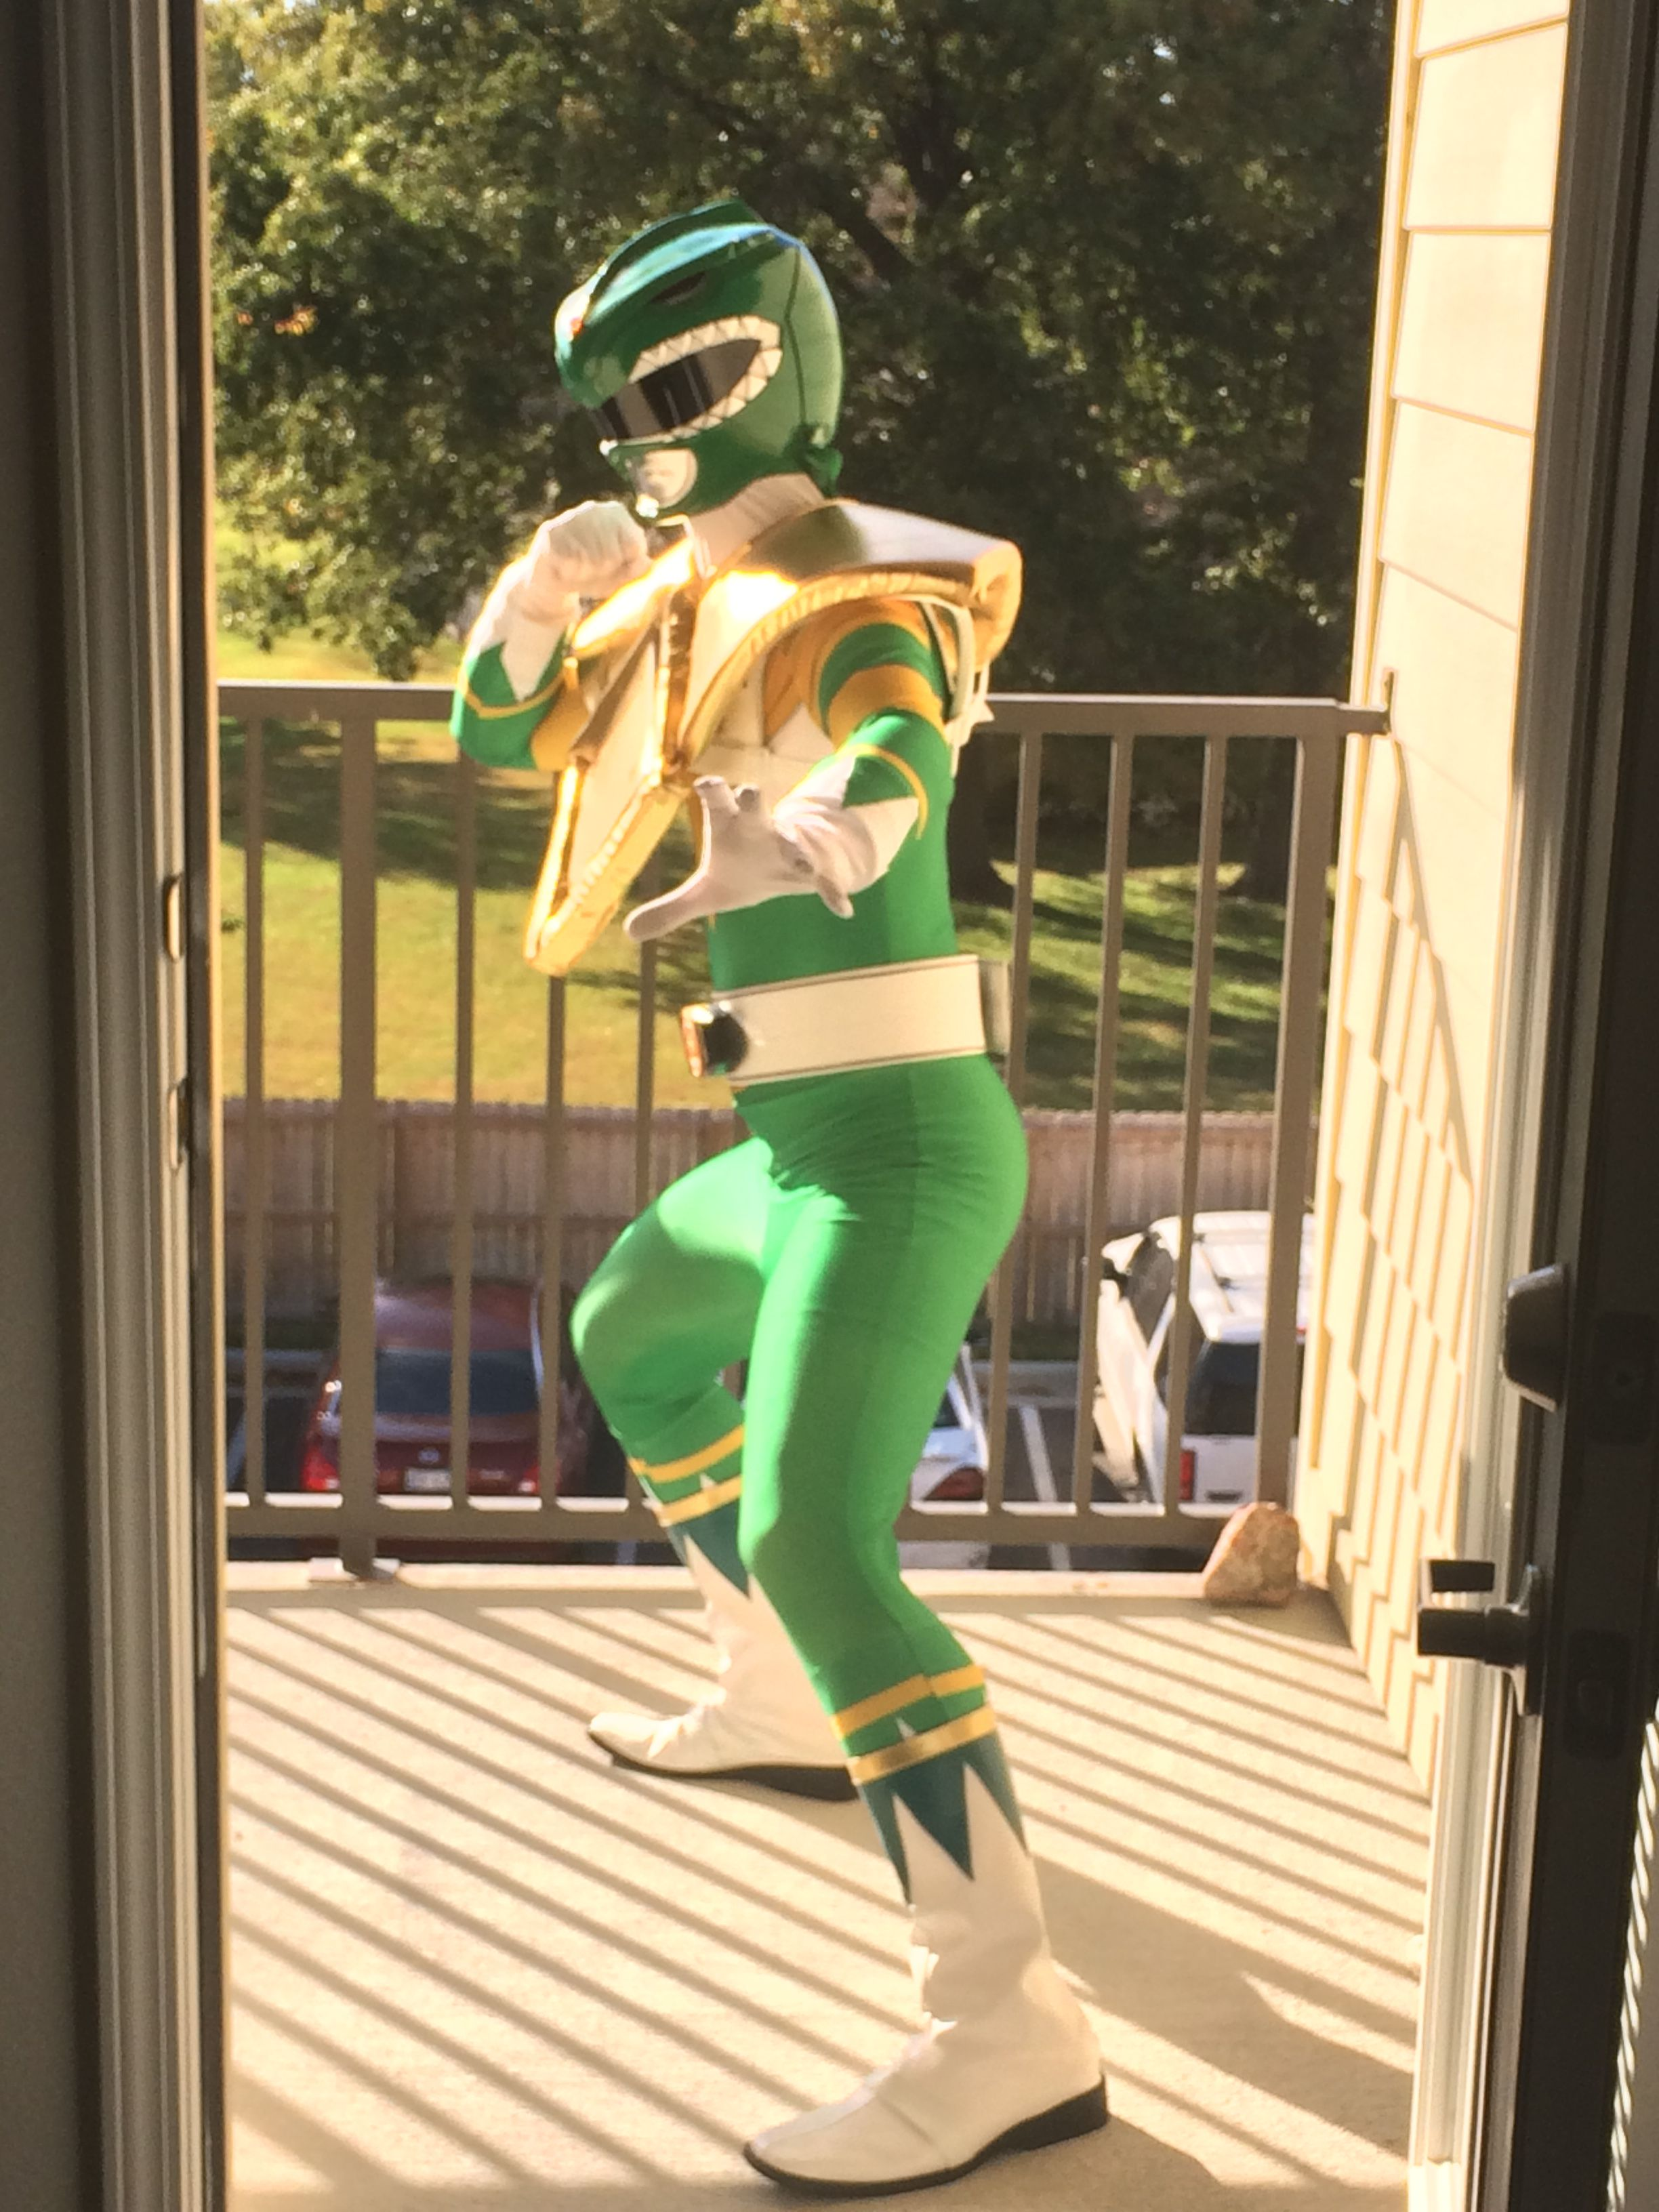 My Green Ranger Cosplay! I thought I'd post this because